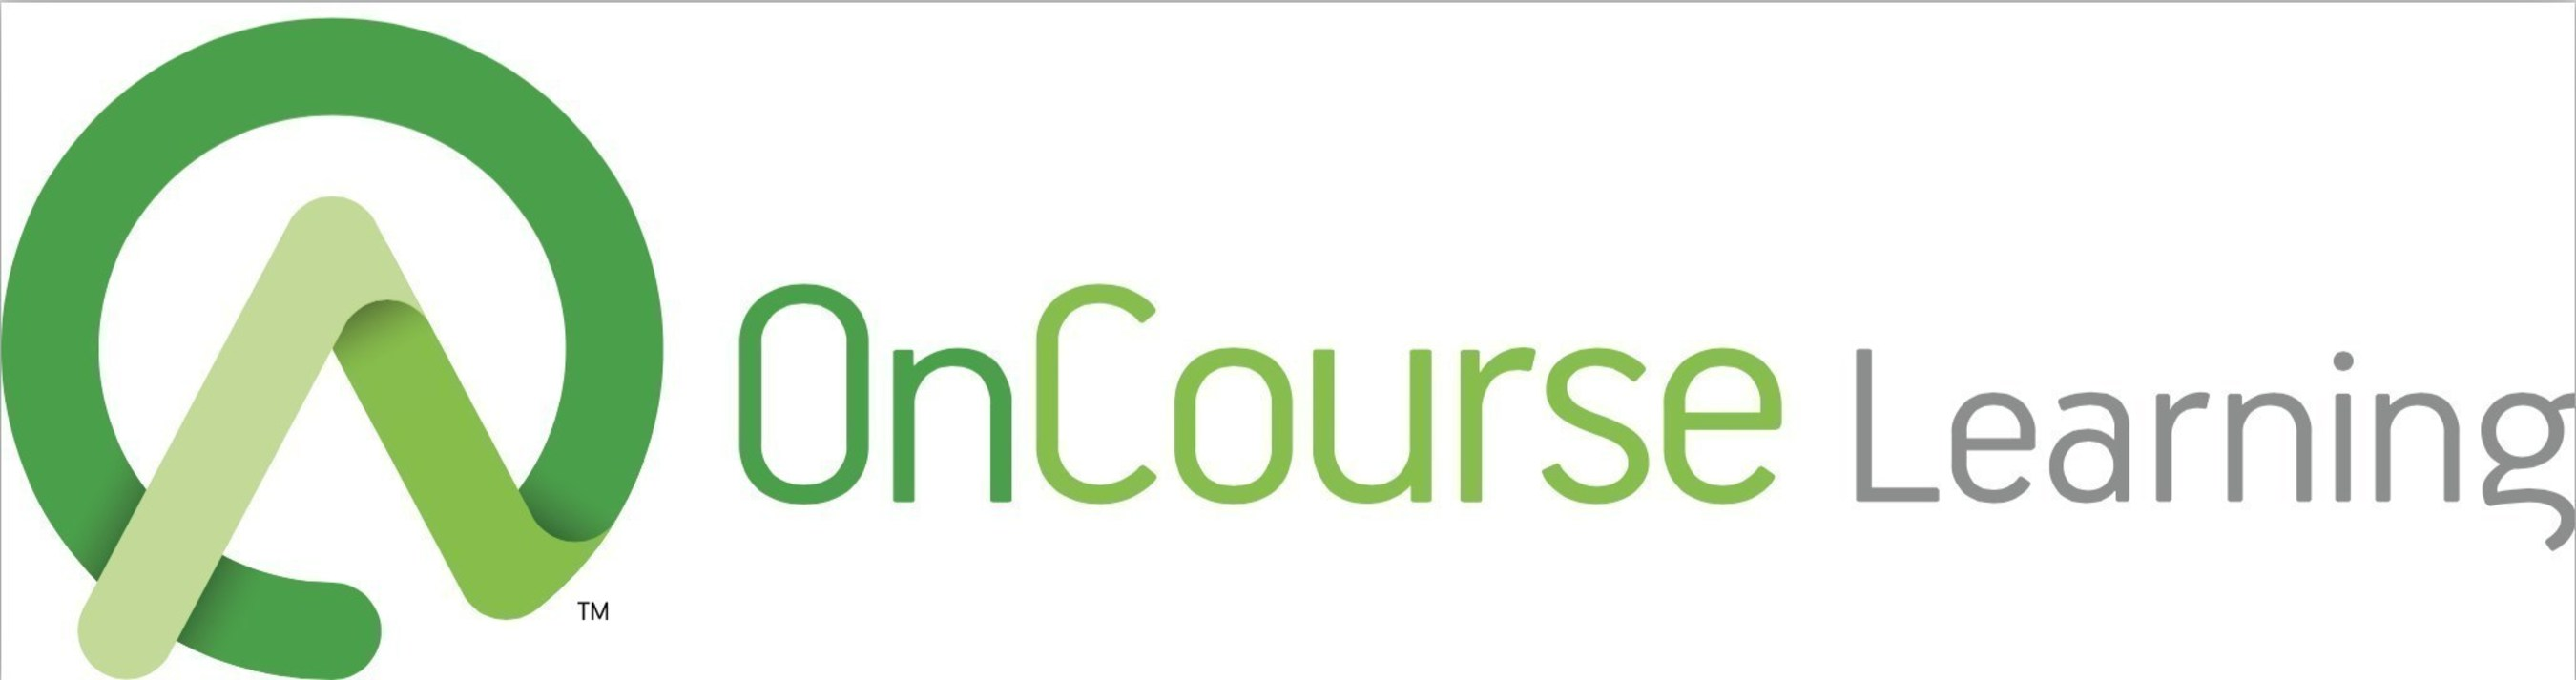 New OnCourse Learning Title Imparts Latest Information About Real Estate Finance